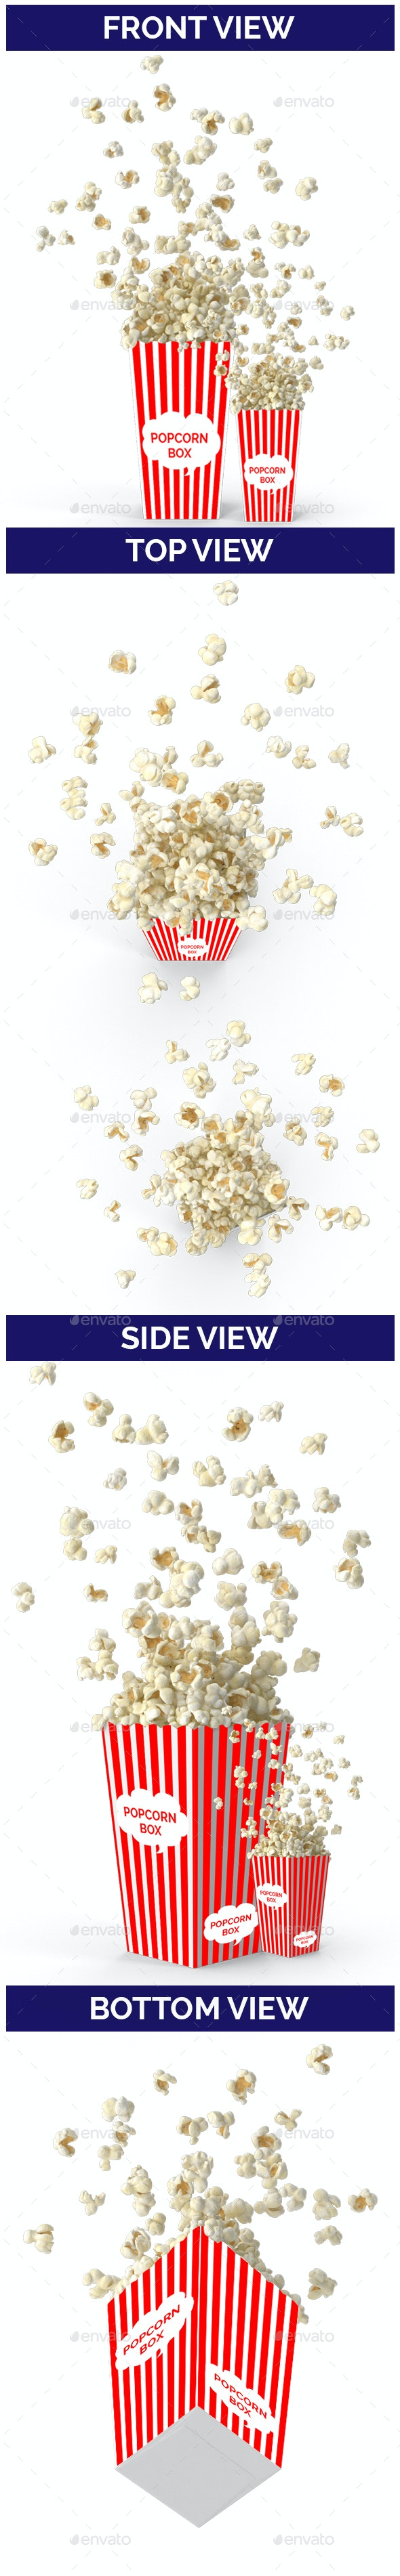 Popcorn Mockup with Box - Food and Drink Packaging